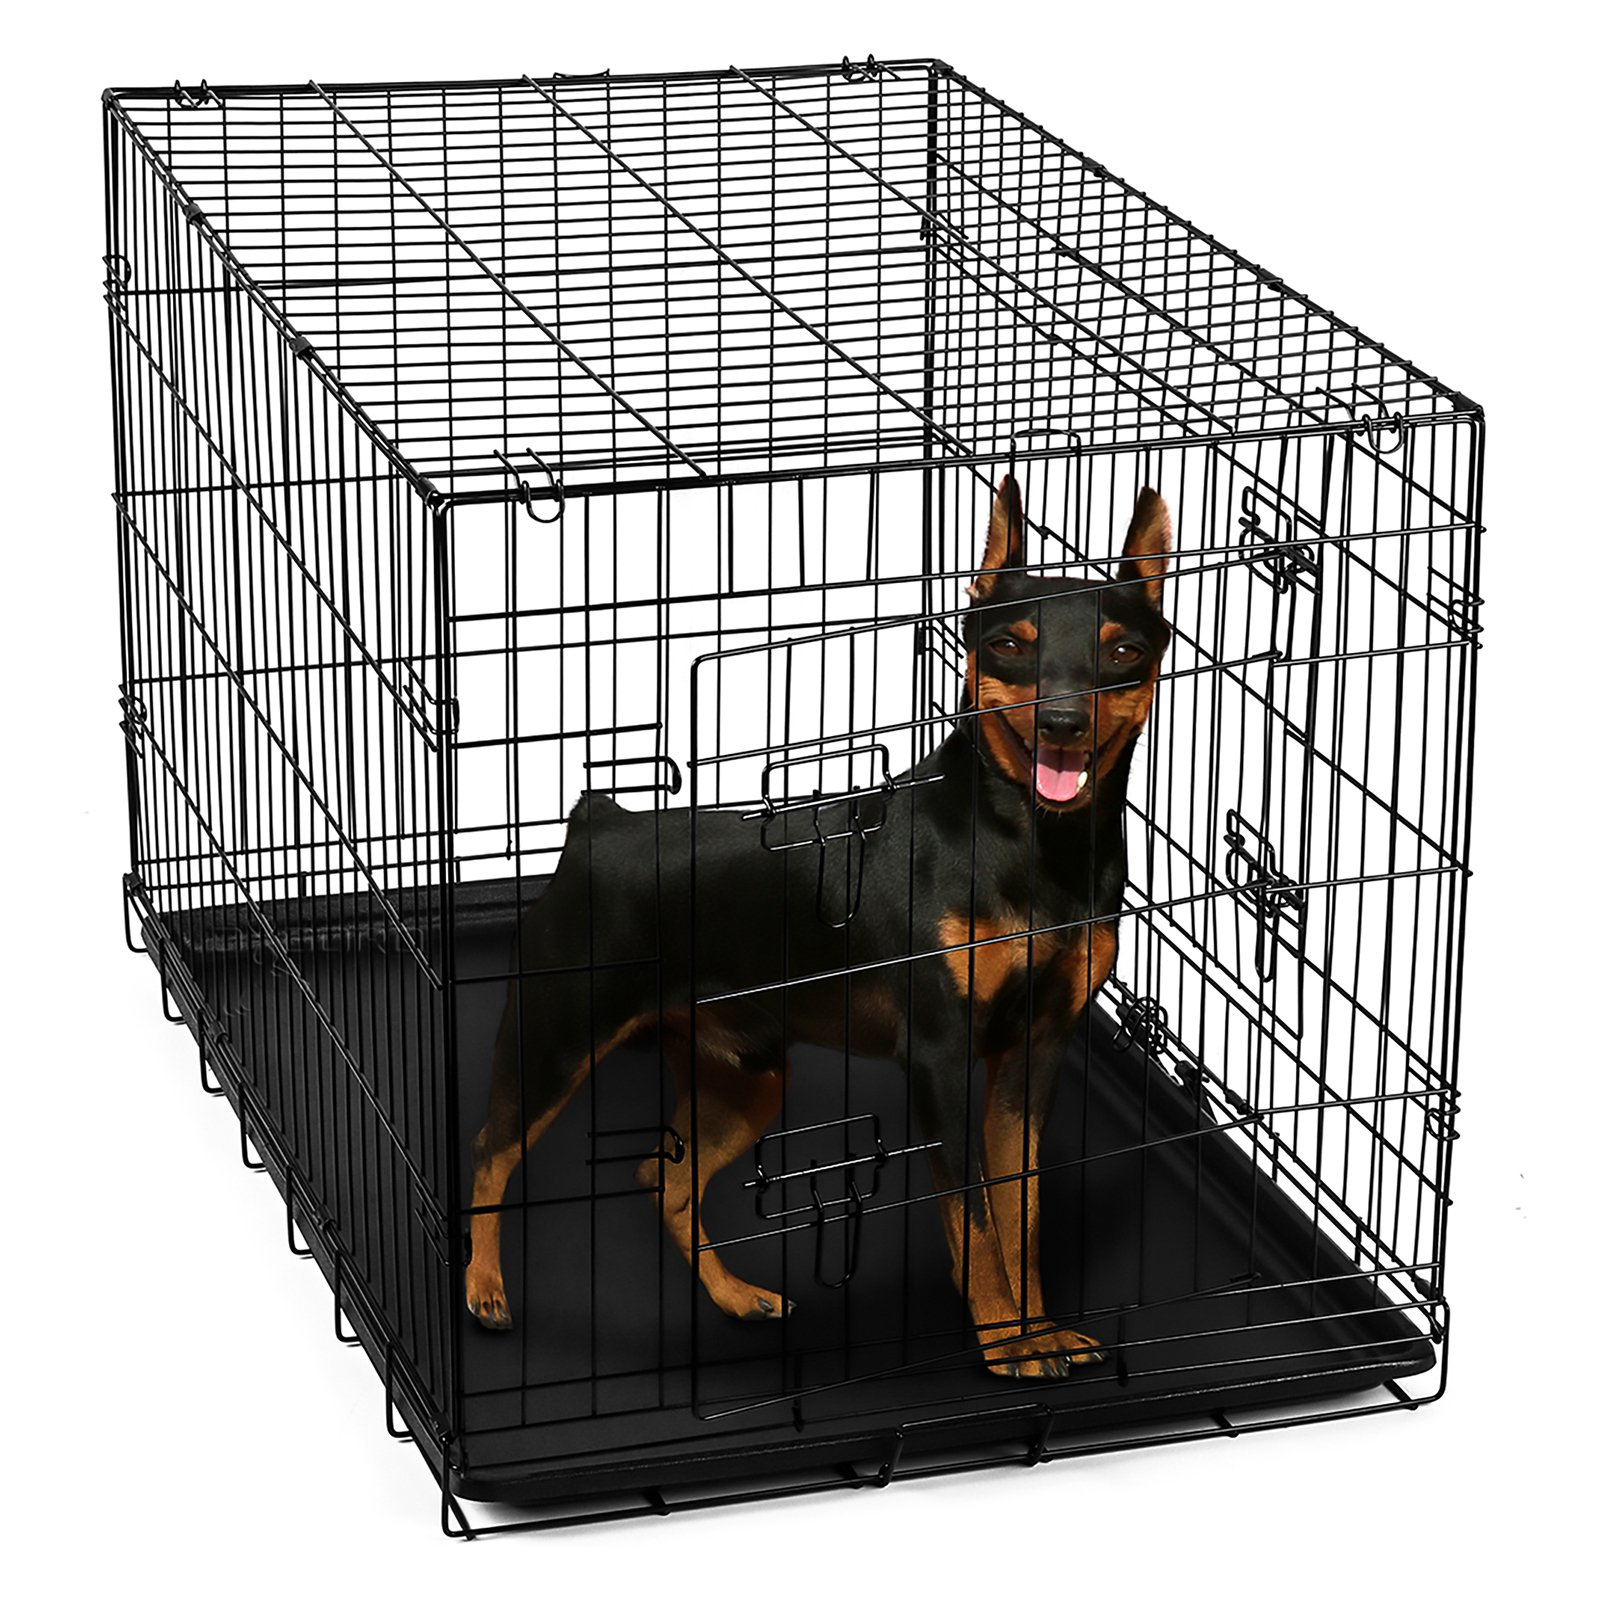 "OxGord 24"" Heavy Duty Foldable Double Door Dog Crate with Divider and Removable ABS Plastic Tray, 24"" x 17"" x 19"""